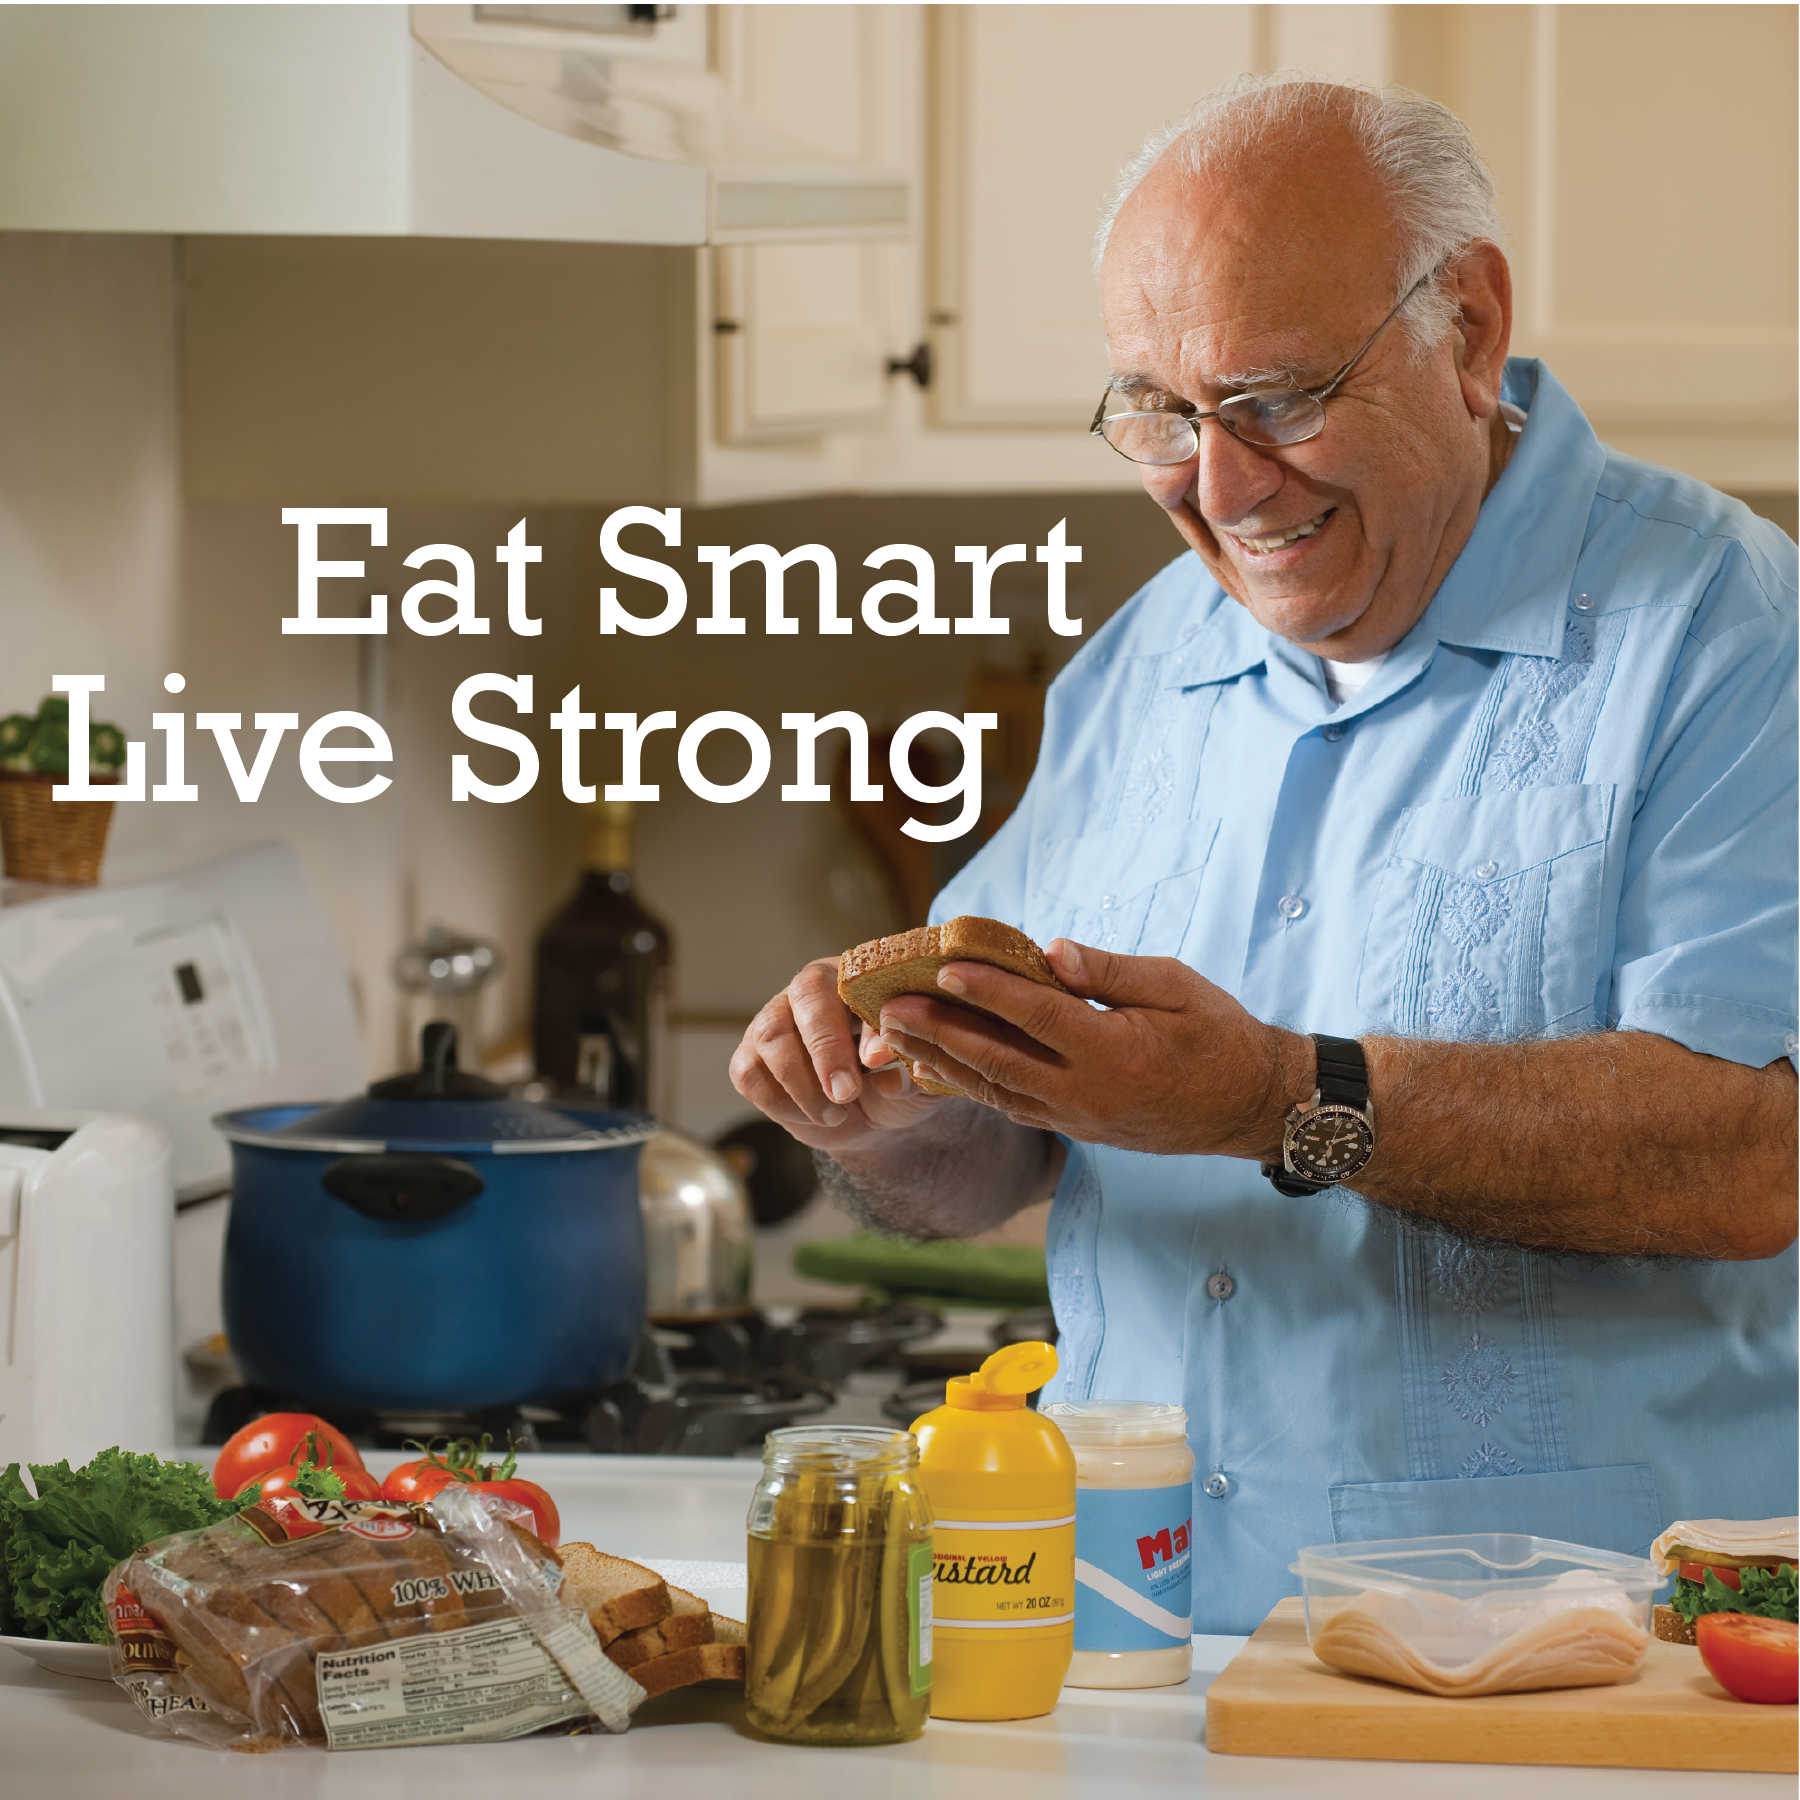 Eat Smart, Live Strong - Eat Smart, Spend Less